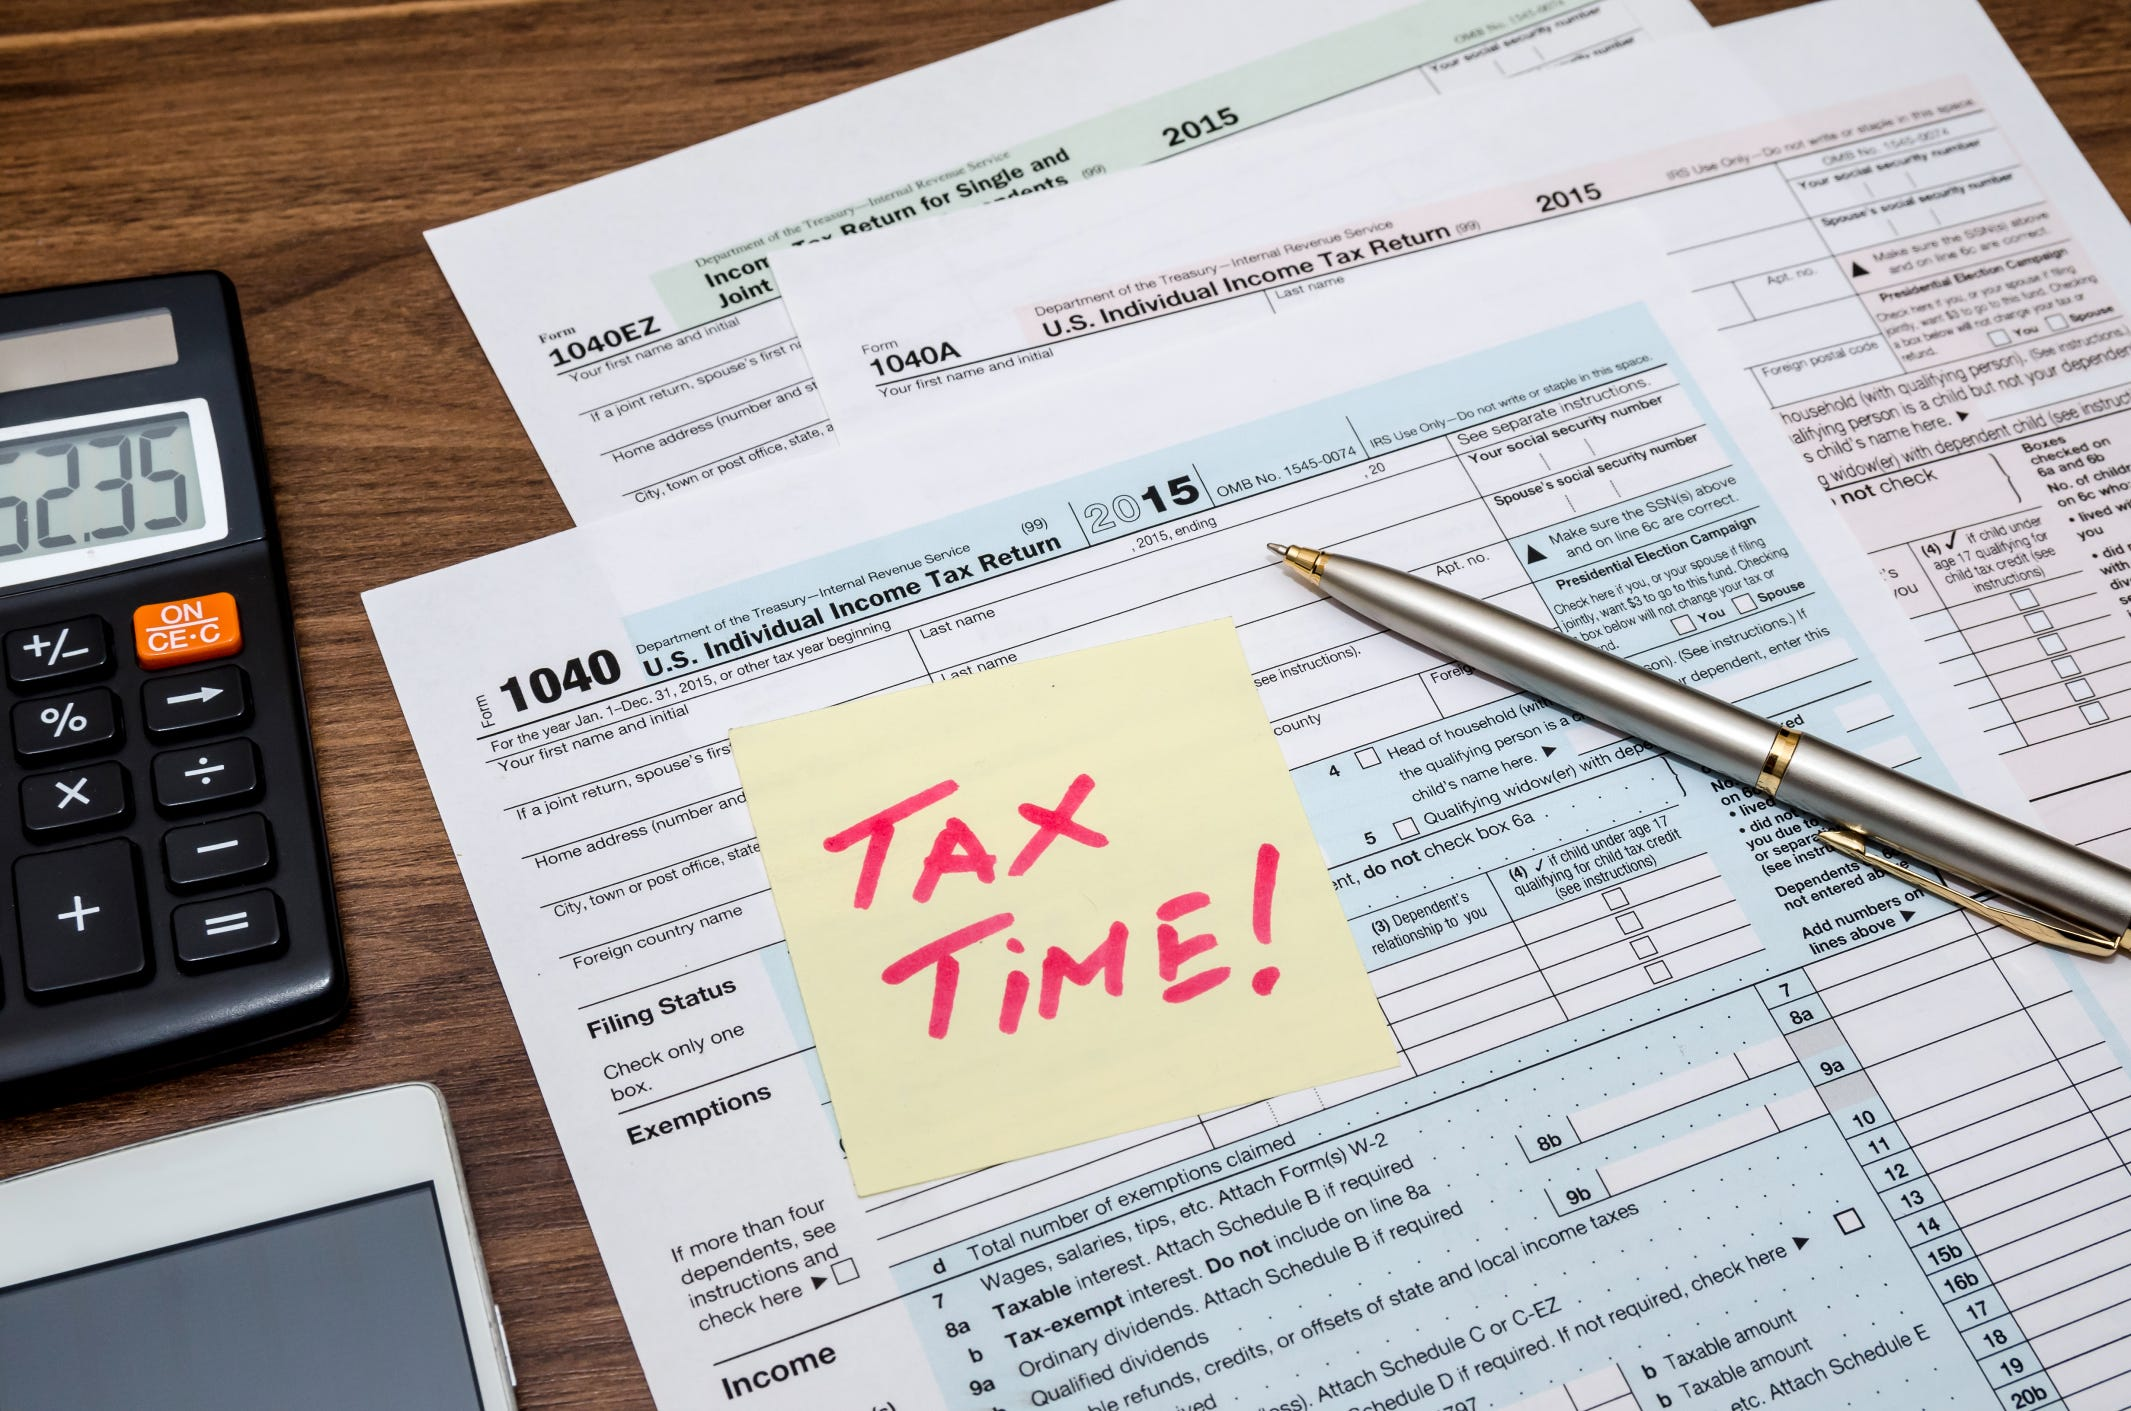 What to do if you missed income tax filing deadline